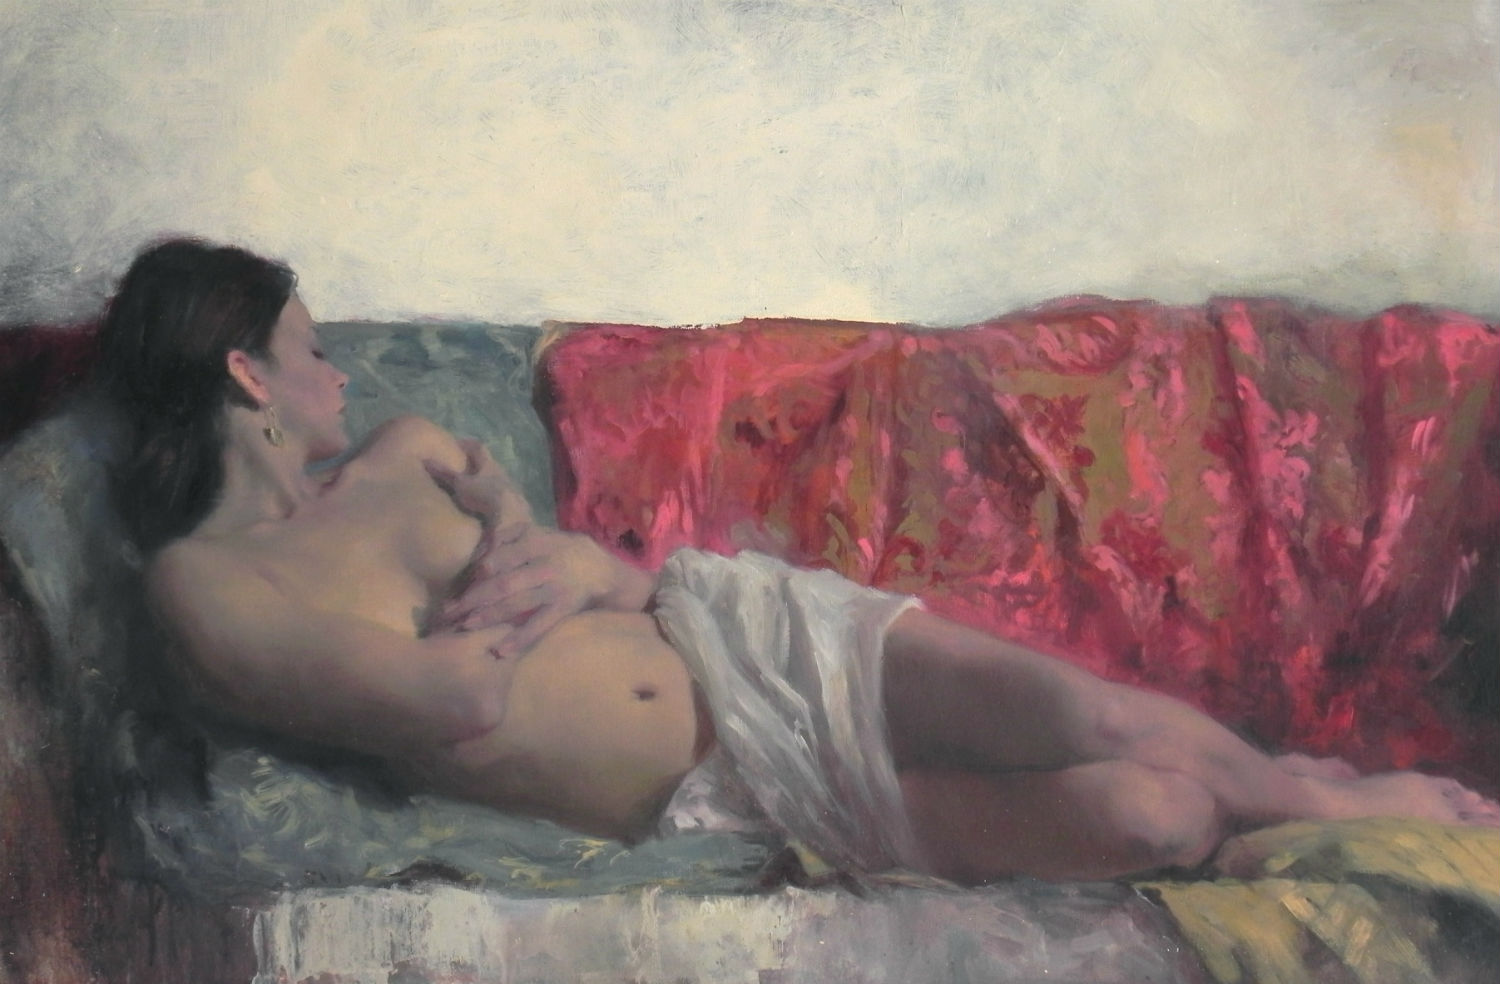 michael alford nude painting